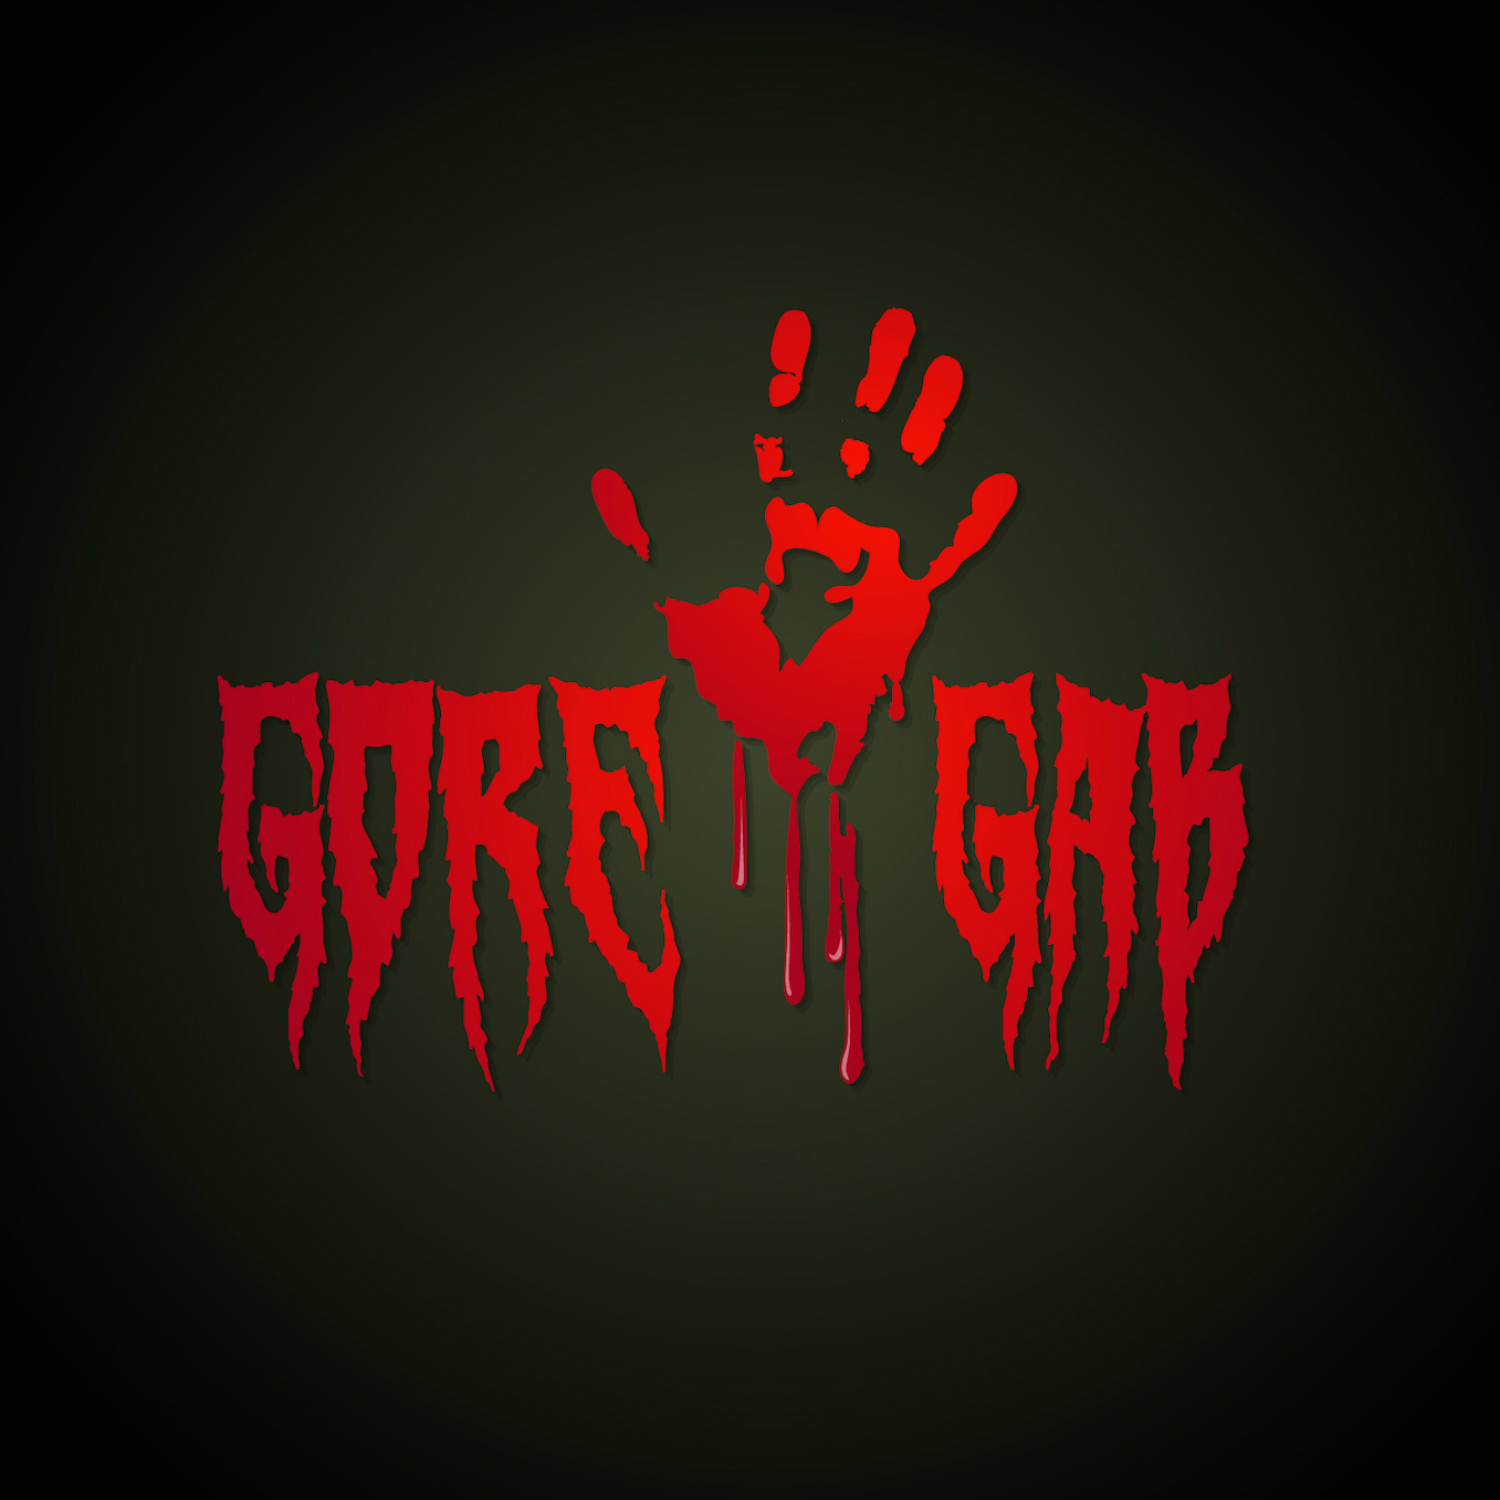 Episode 22: SEE NO EVIL Gore Gab podcast